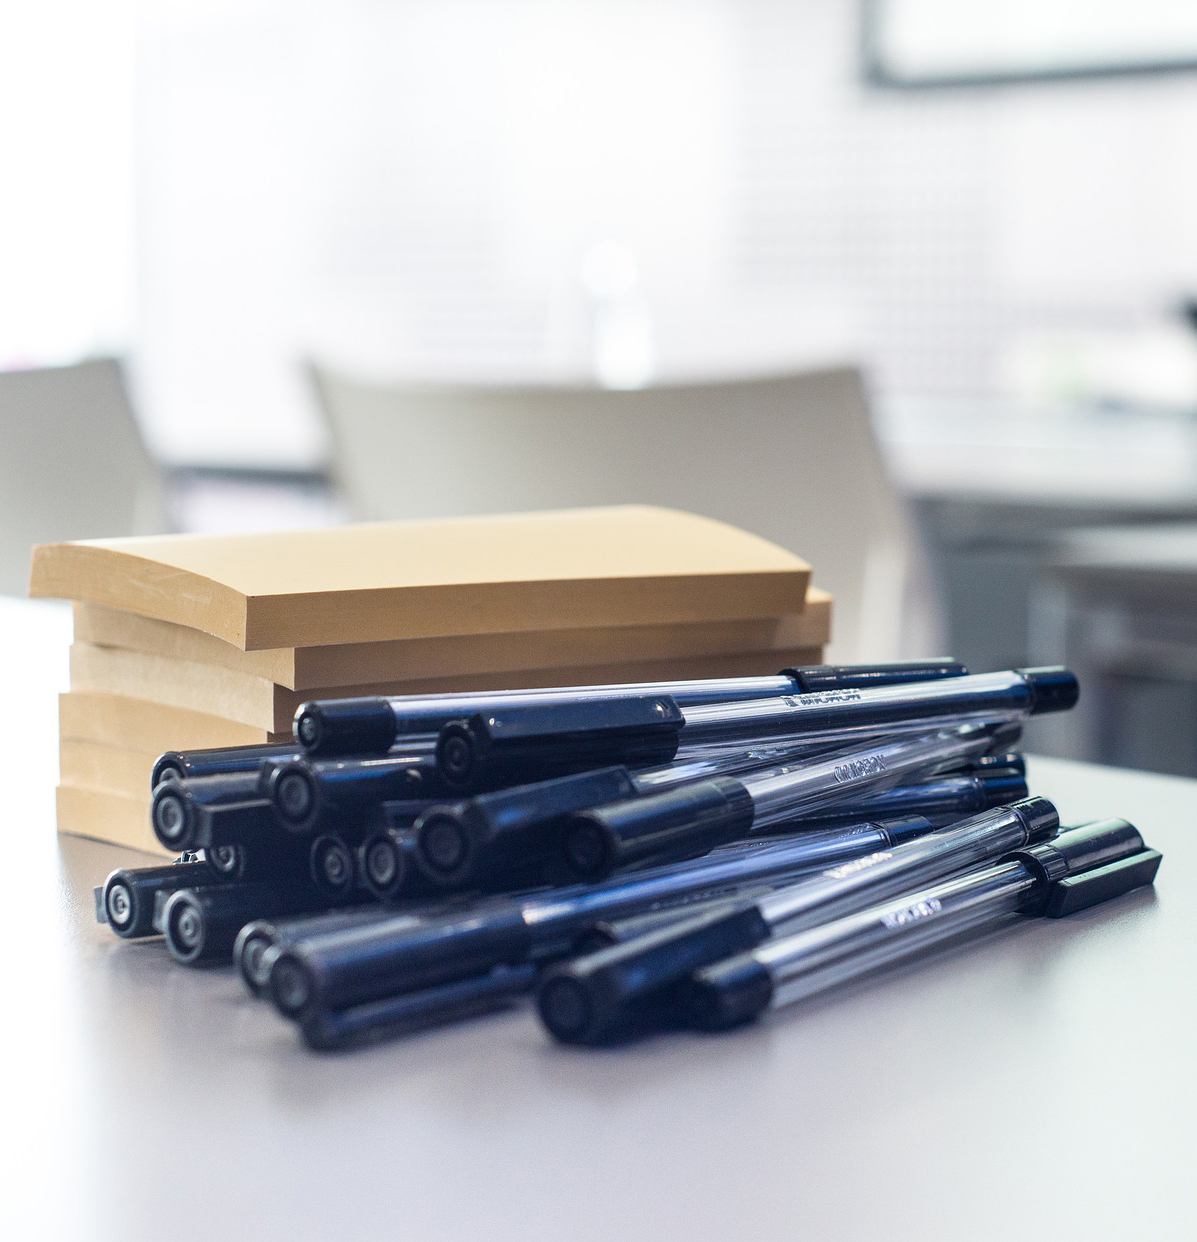 Image of a pile of pens and post-it notes